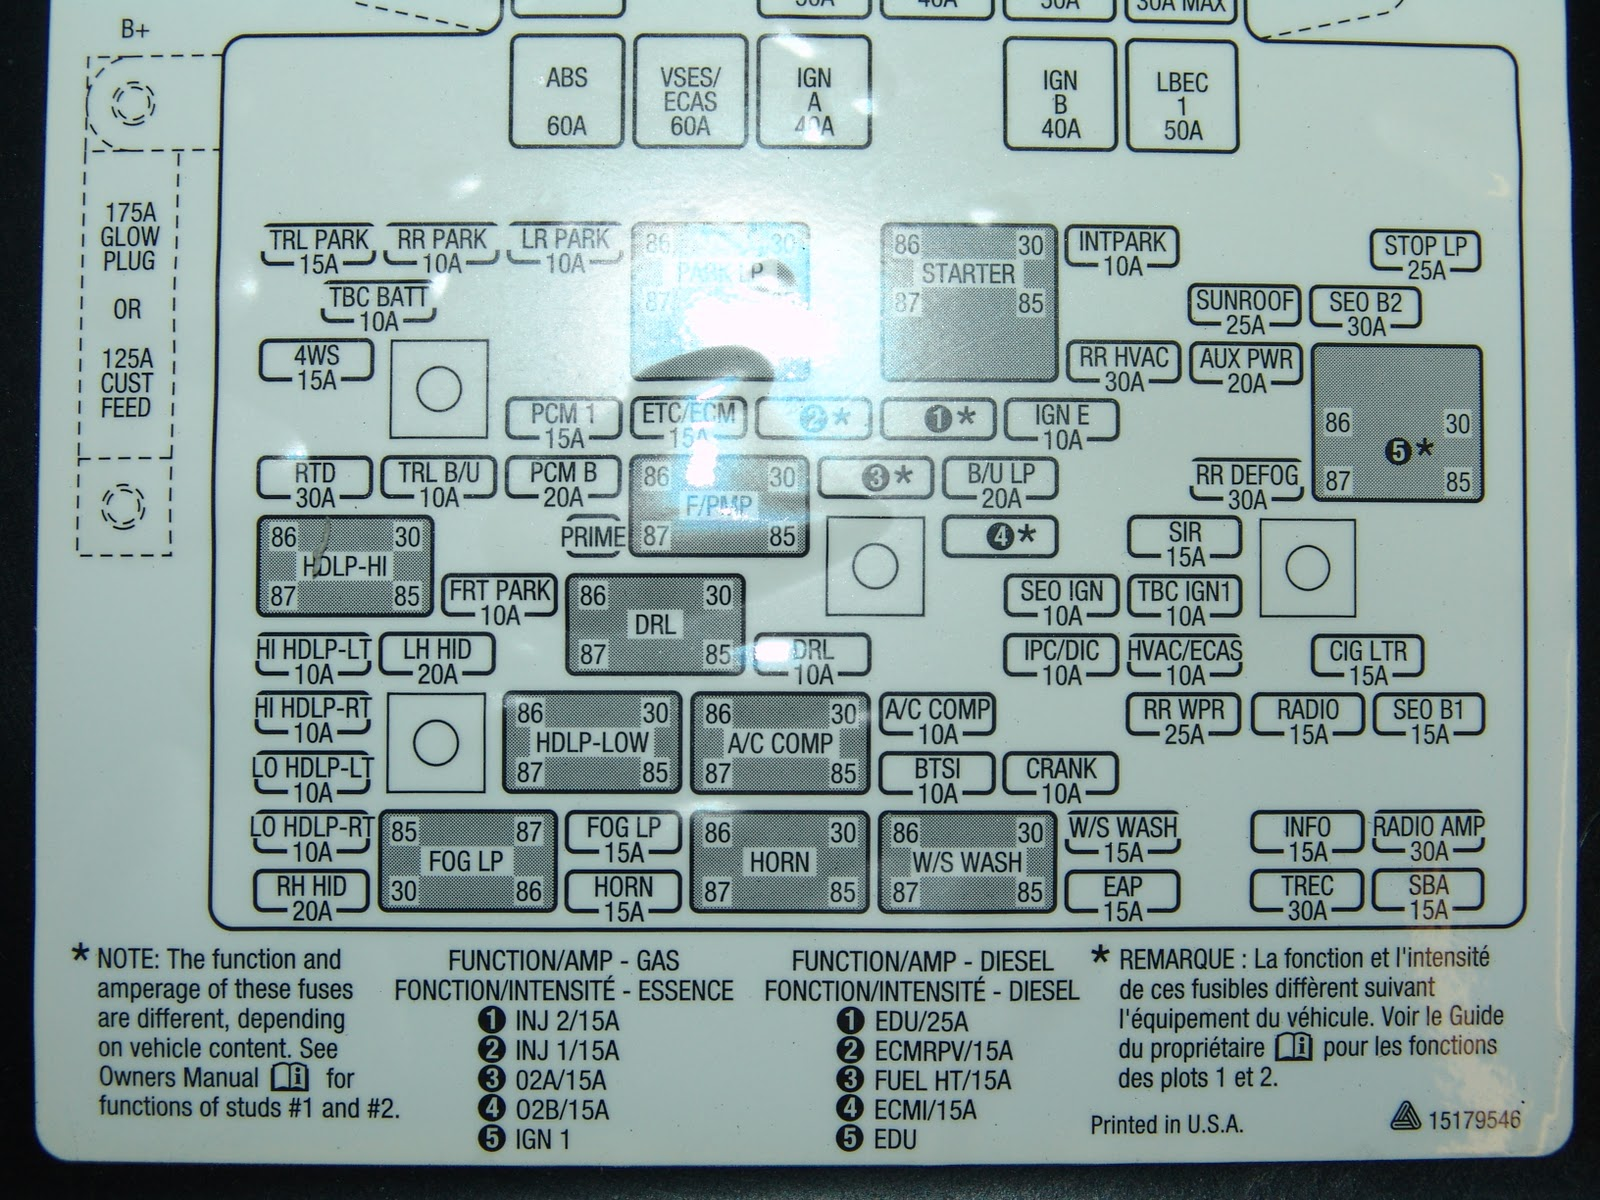 2005 Chevy Suburban Fuse Panel Diagram Circuit Symbols Vw Golf Box Electrical Work Wiring U2022 Rh Aglabs Co 2006 Jetta